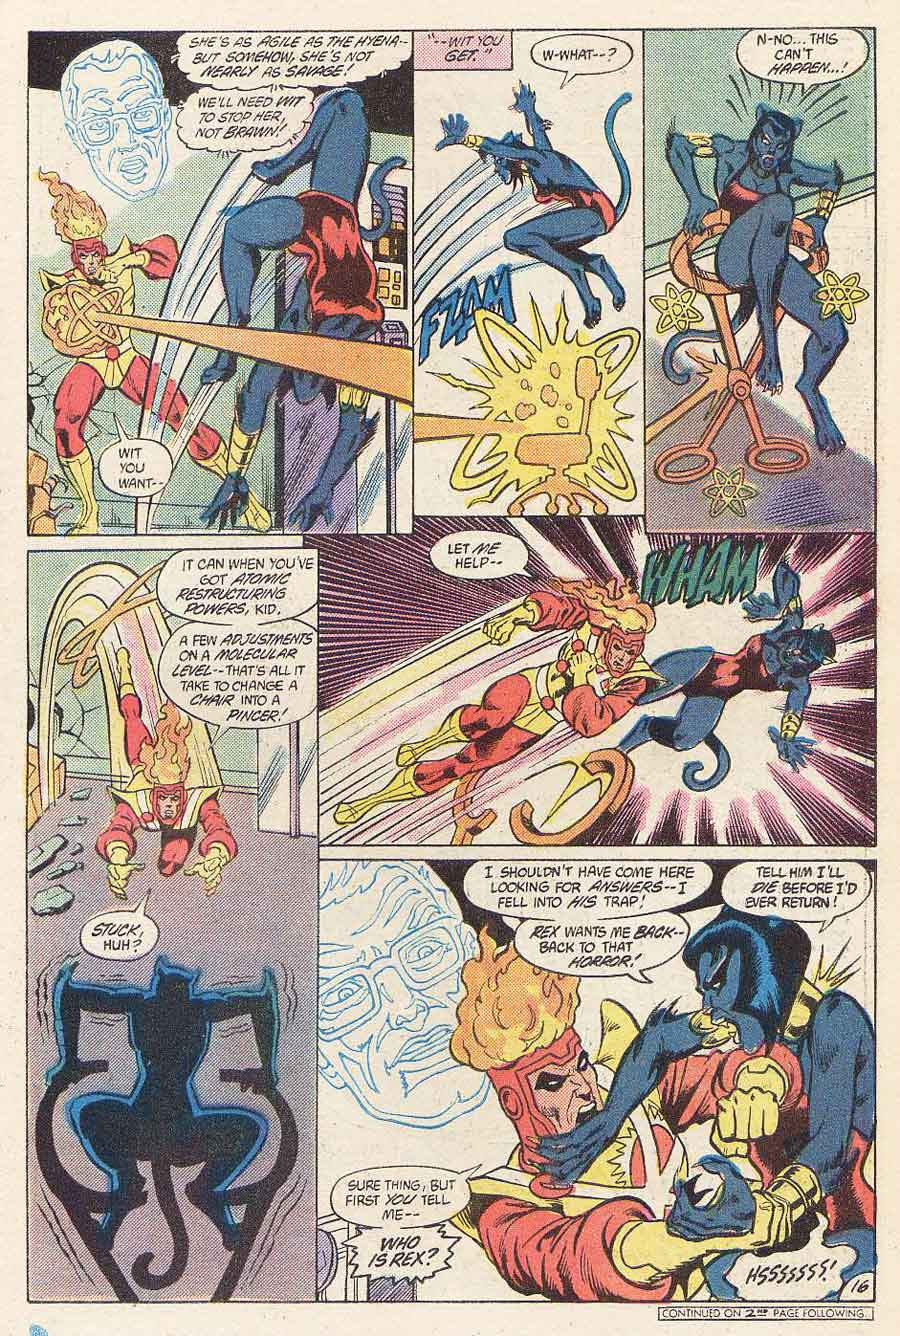 Justice League of America #221 by Gerry Conway, Chuck Patton and Pablo Marcos